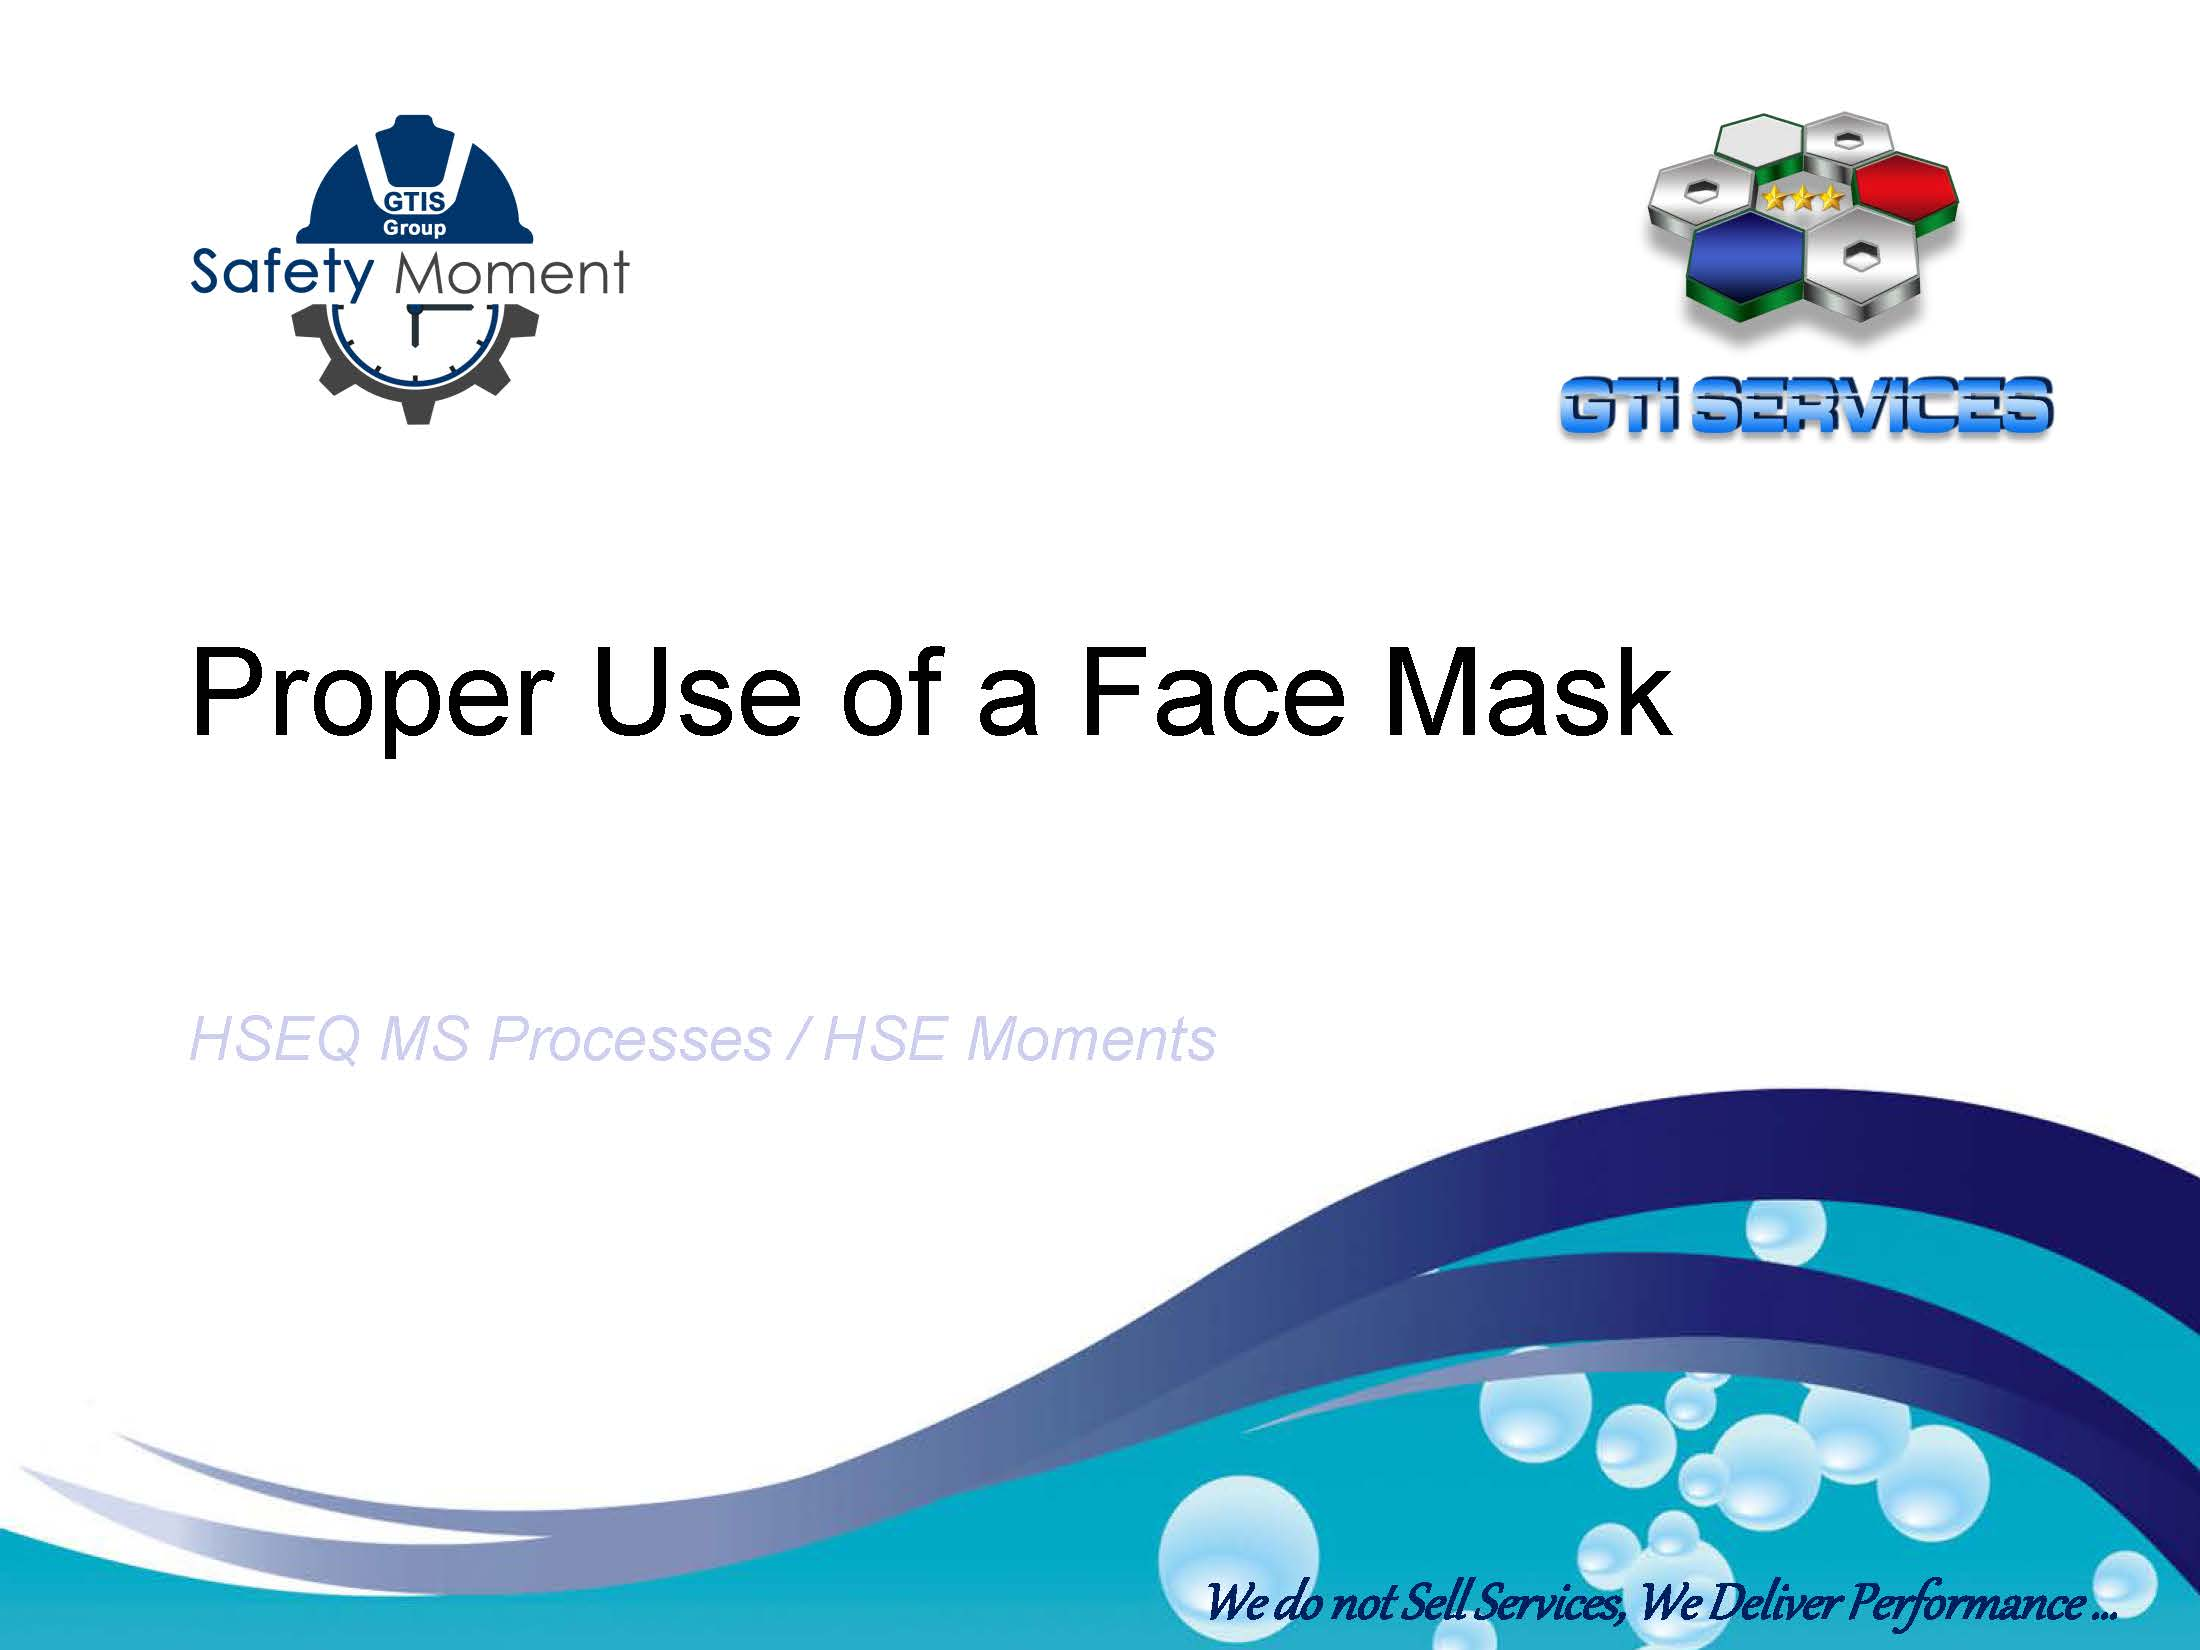 20200224 - Saftey Moment Proper Use of a Face Mask_Page_1